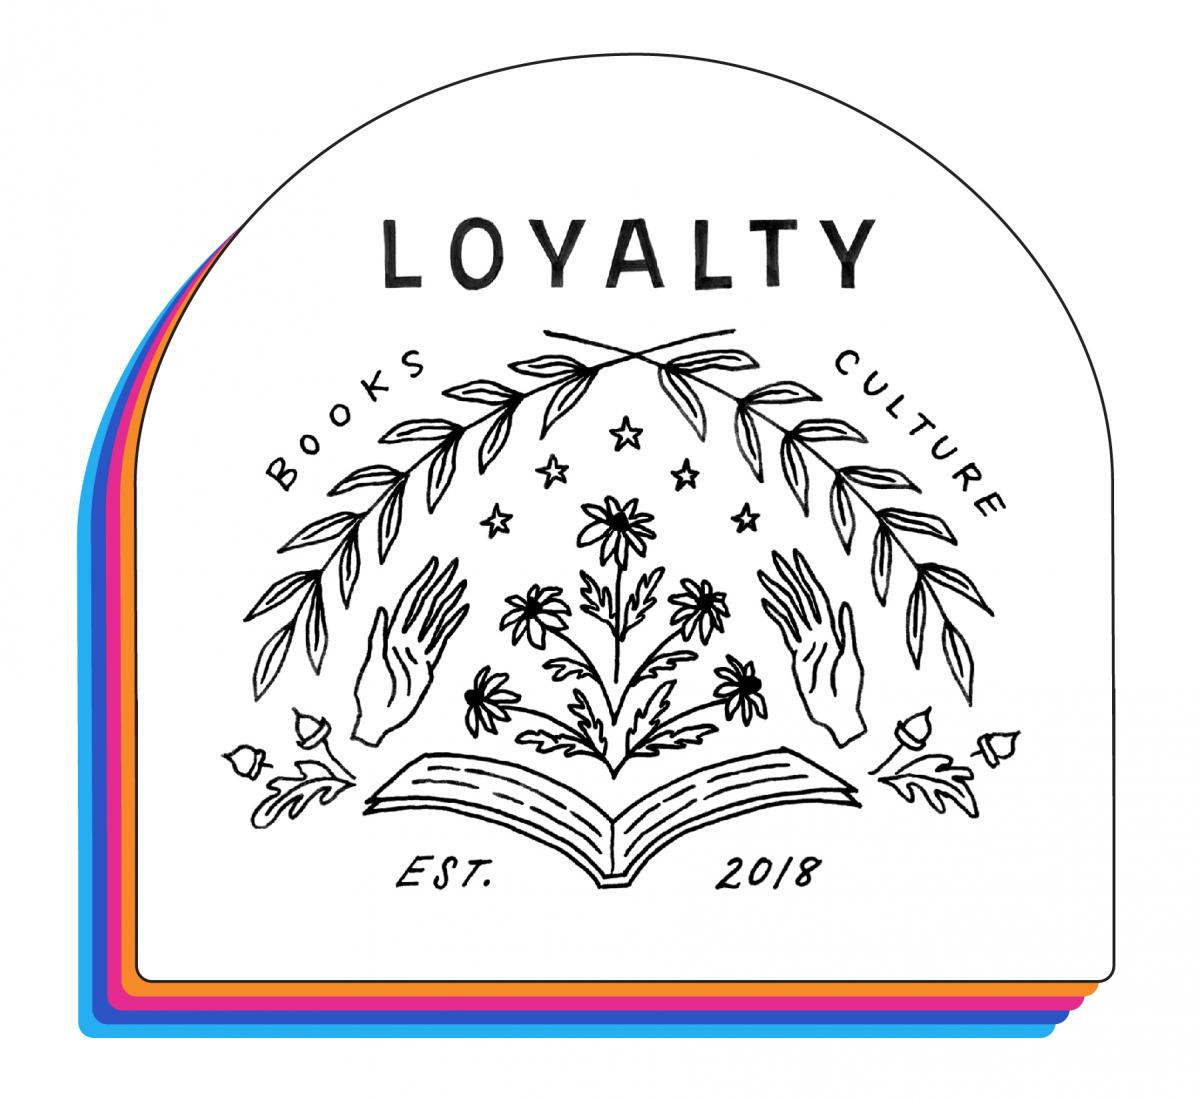 Loyalty Bookstores (Book shop – Black and Queer founder)